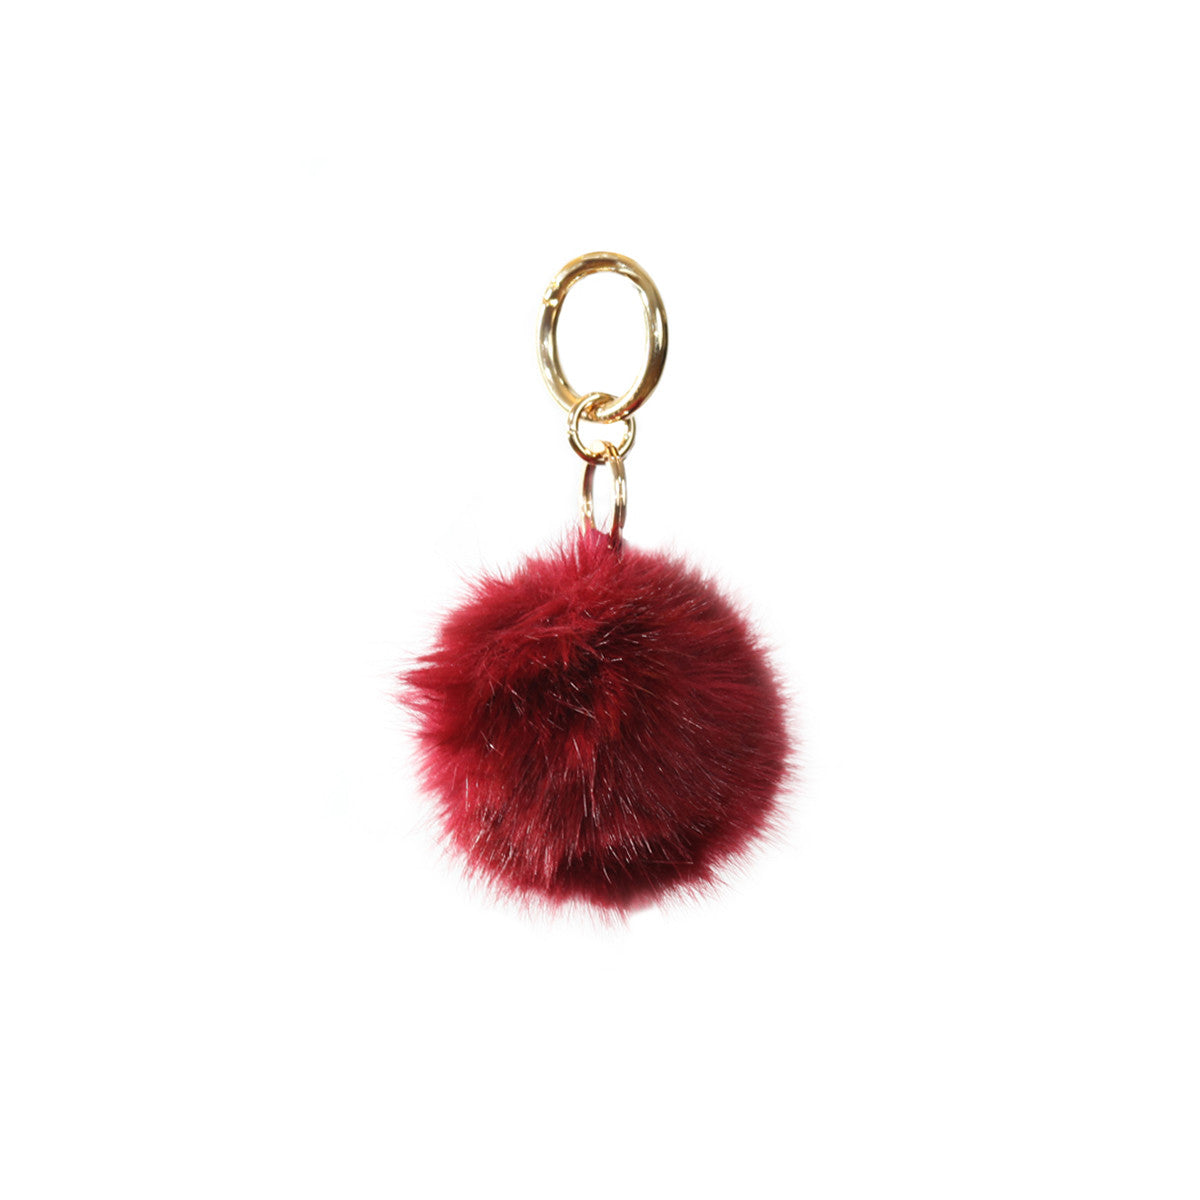 Fluffy - Pompon Key Chain - Dark Wine